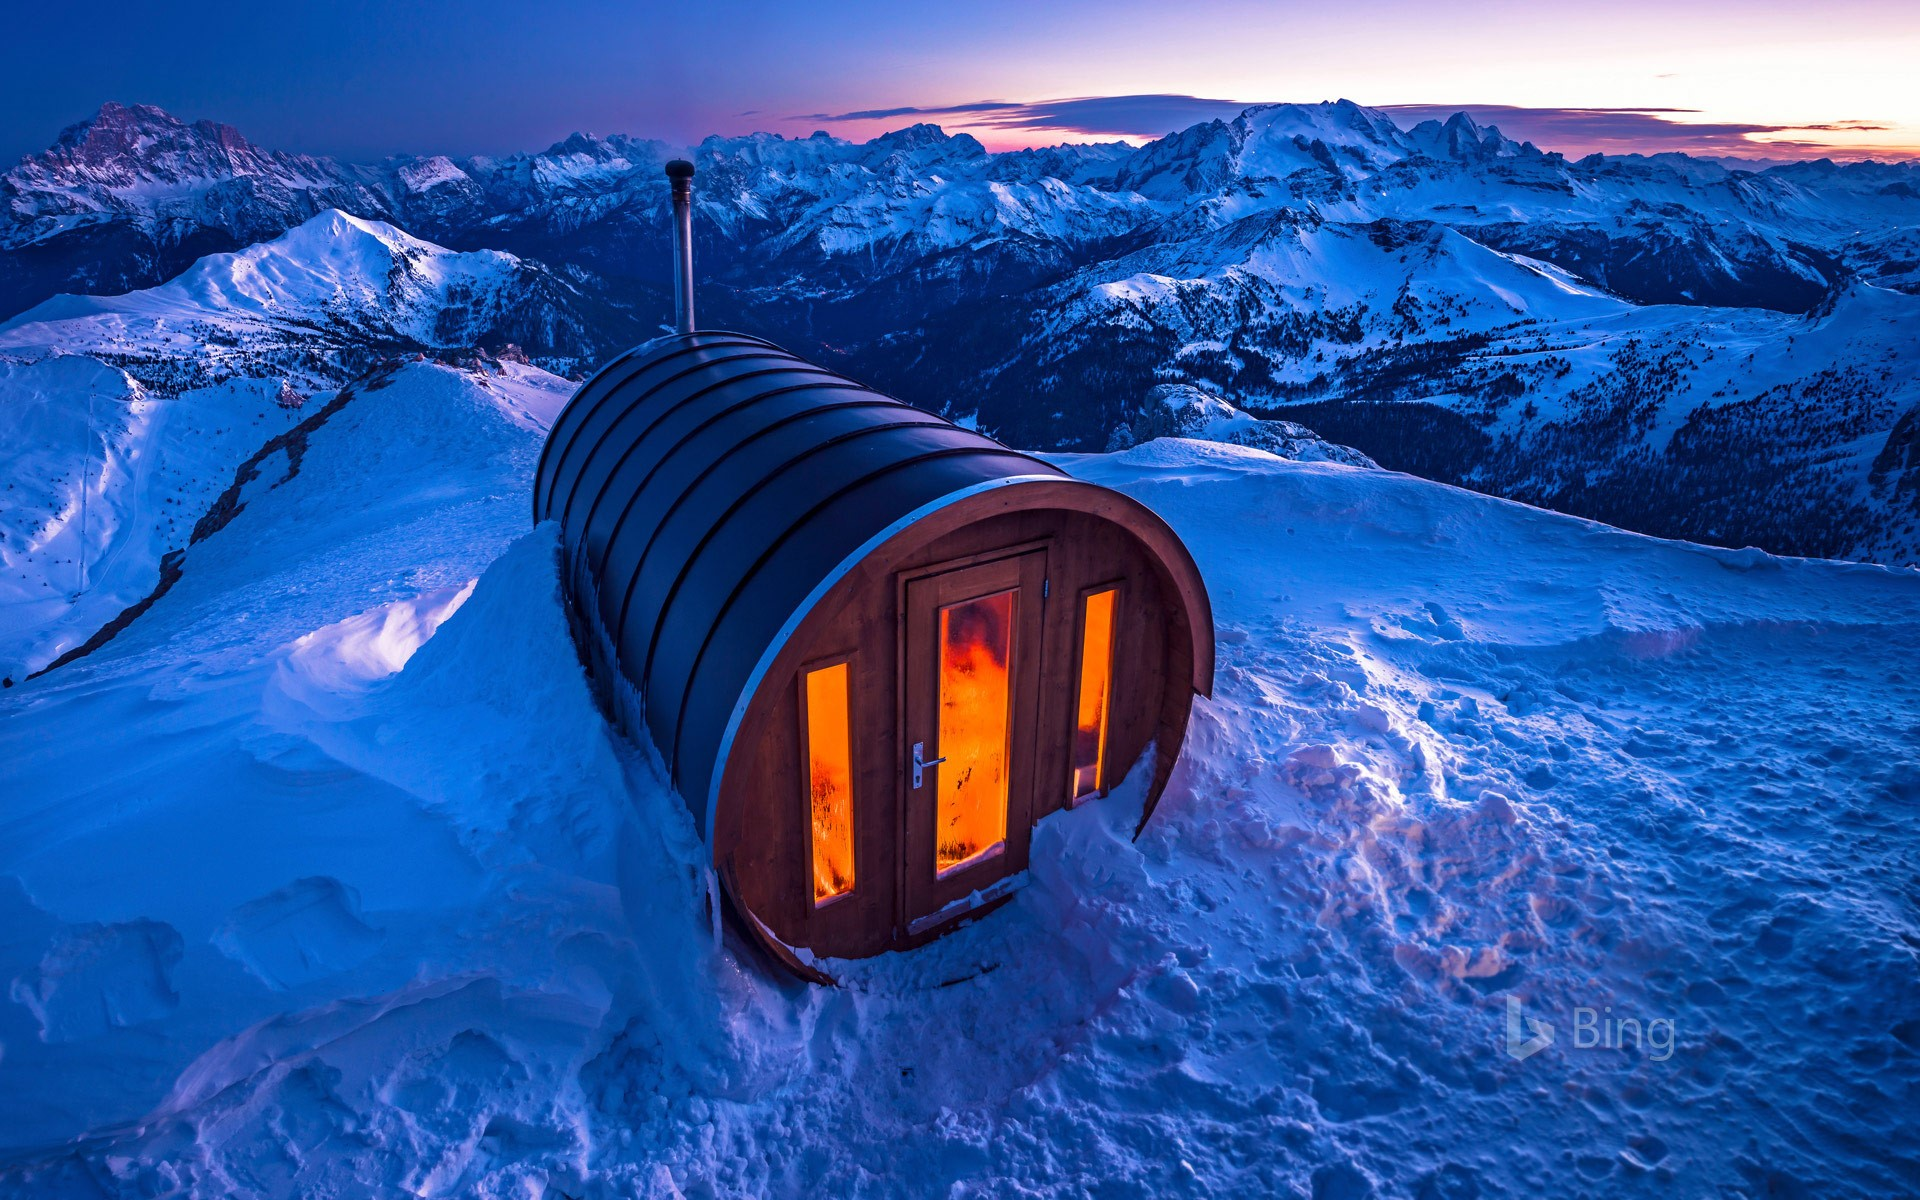 Sauna at Lagazuoi in the Dolomites of Italy